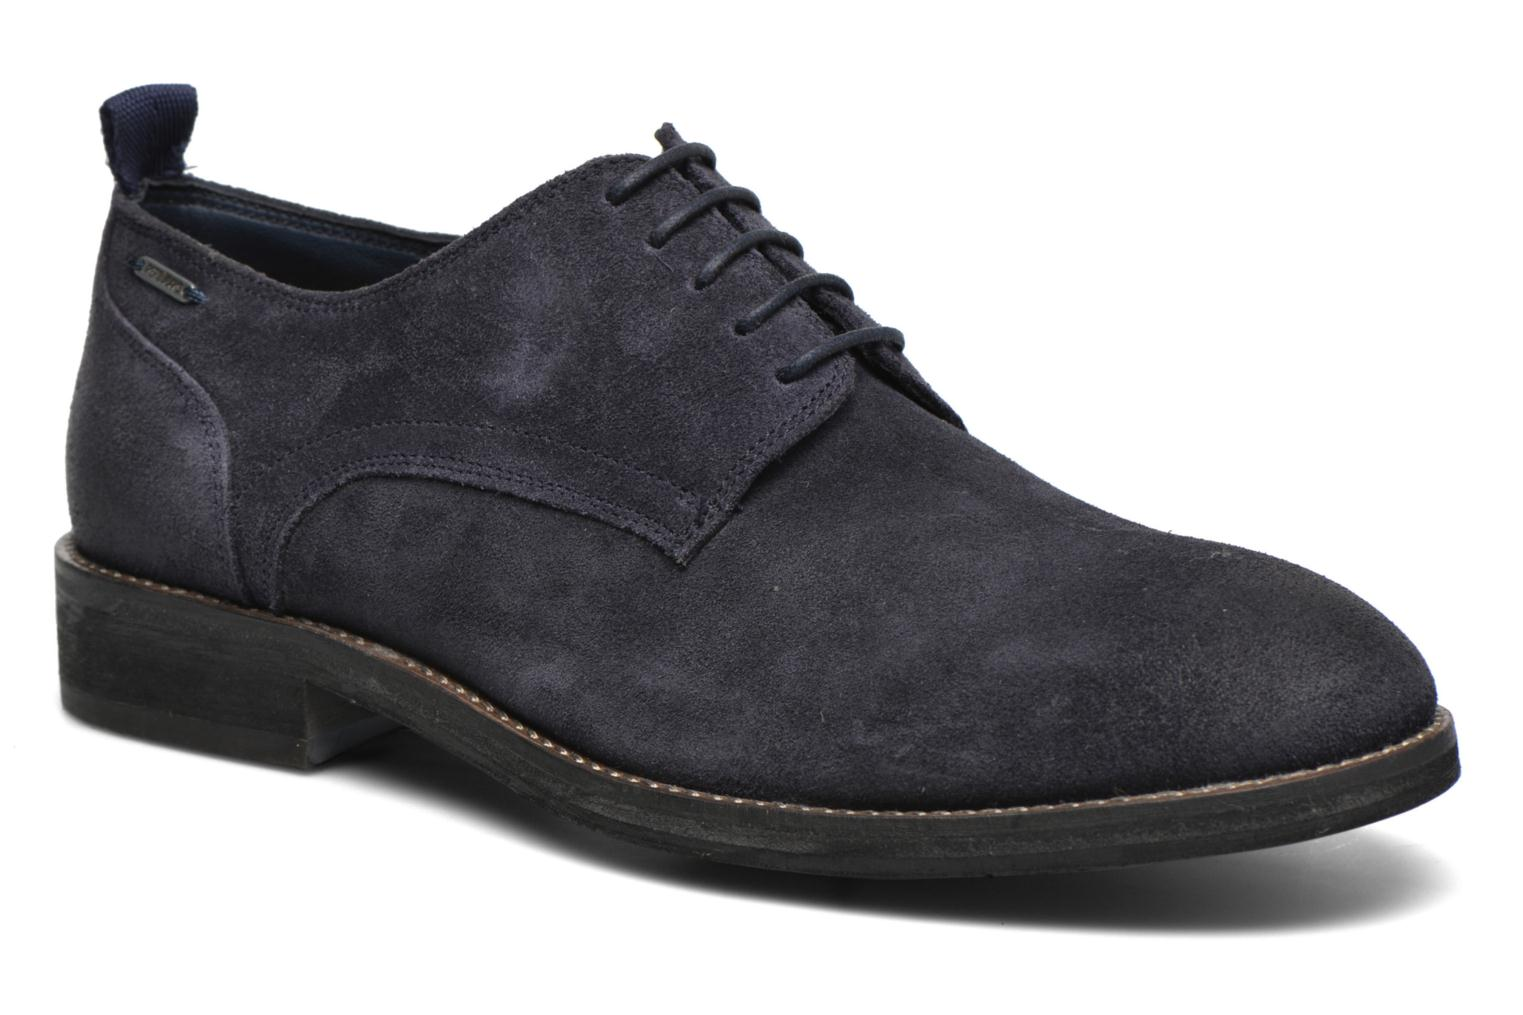 Veterschoenen Hackney Rustic by Pepe jeans